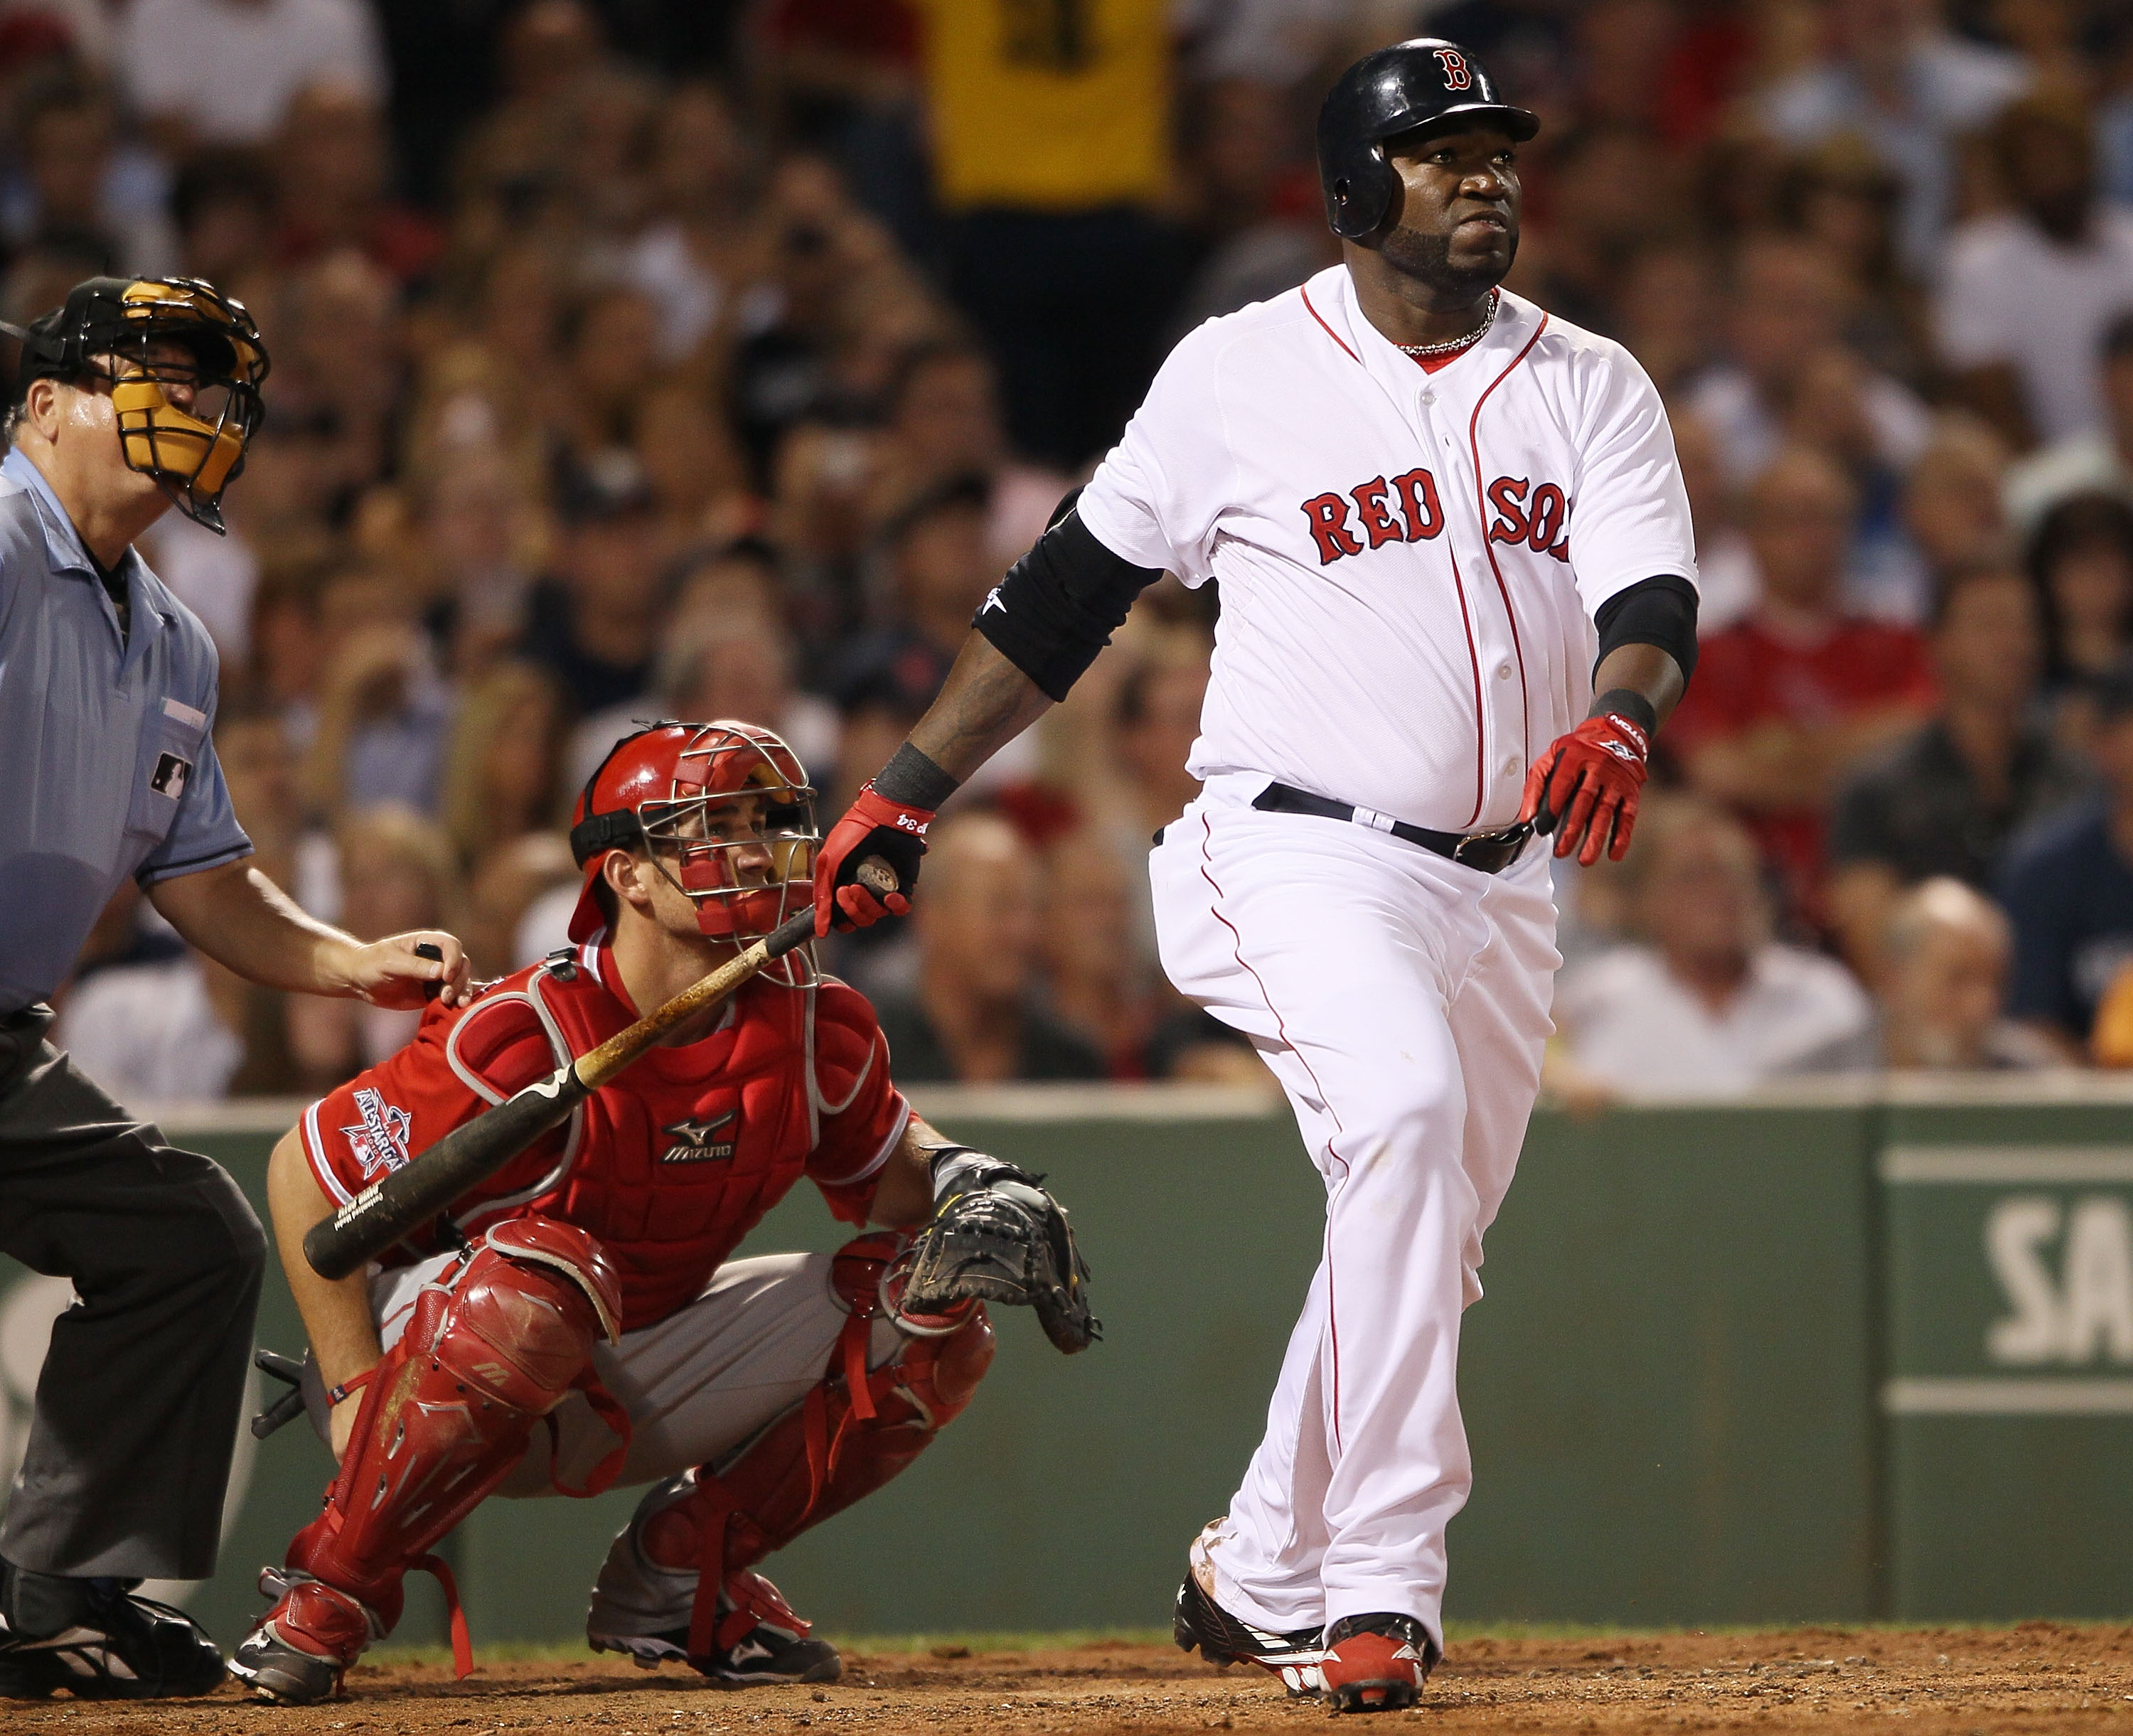 BOSTON - AUGUST 19:  David Ortiz #34  of the Boston Red Sox hits a solo home run in the fourth inning as Jeff Mathis #5 of the Los Angeles Angels of Anaheim defends on August 19, 2010 at Fenway Park in Boston, Massachusetts.  (Photo by Elsa/Getty Images)